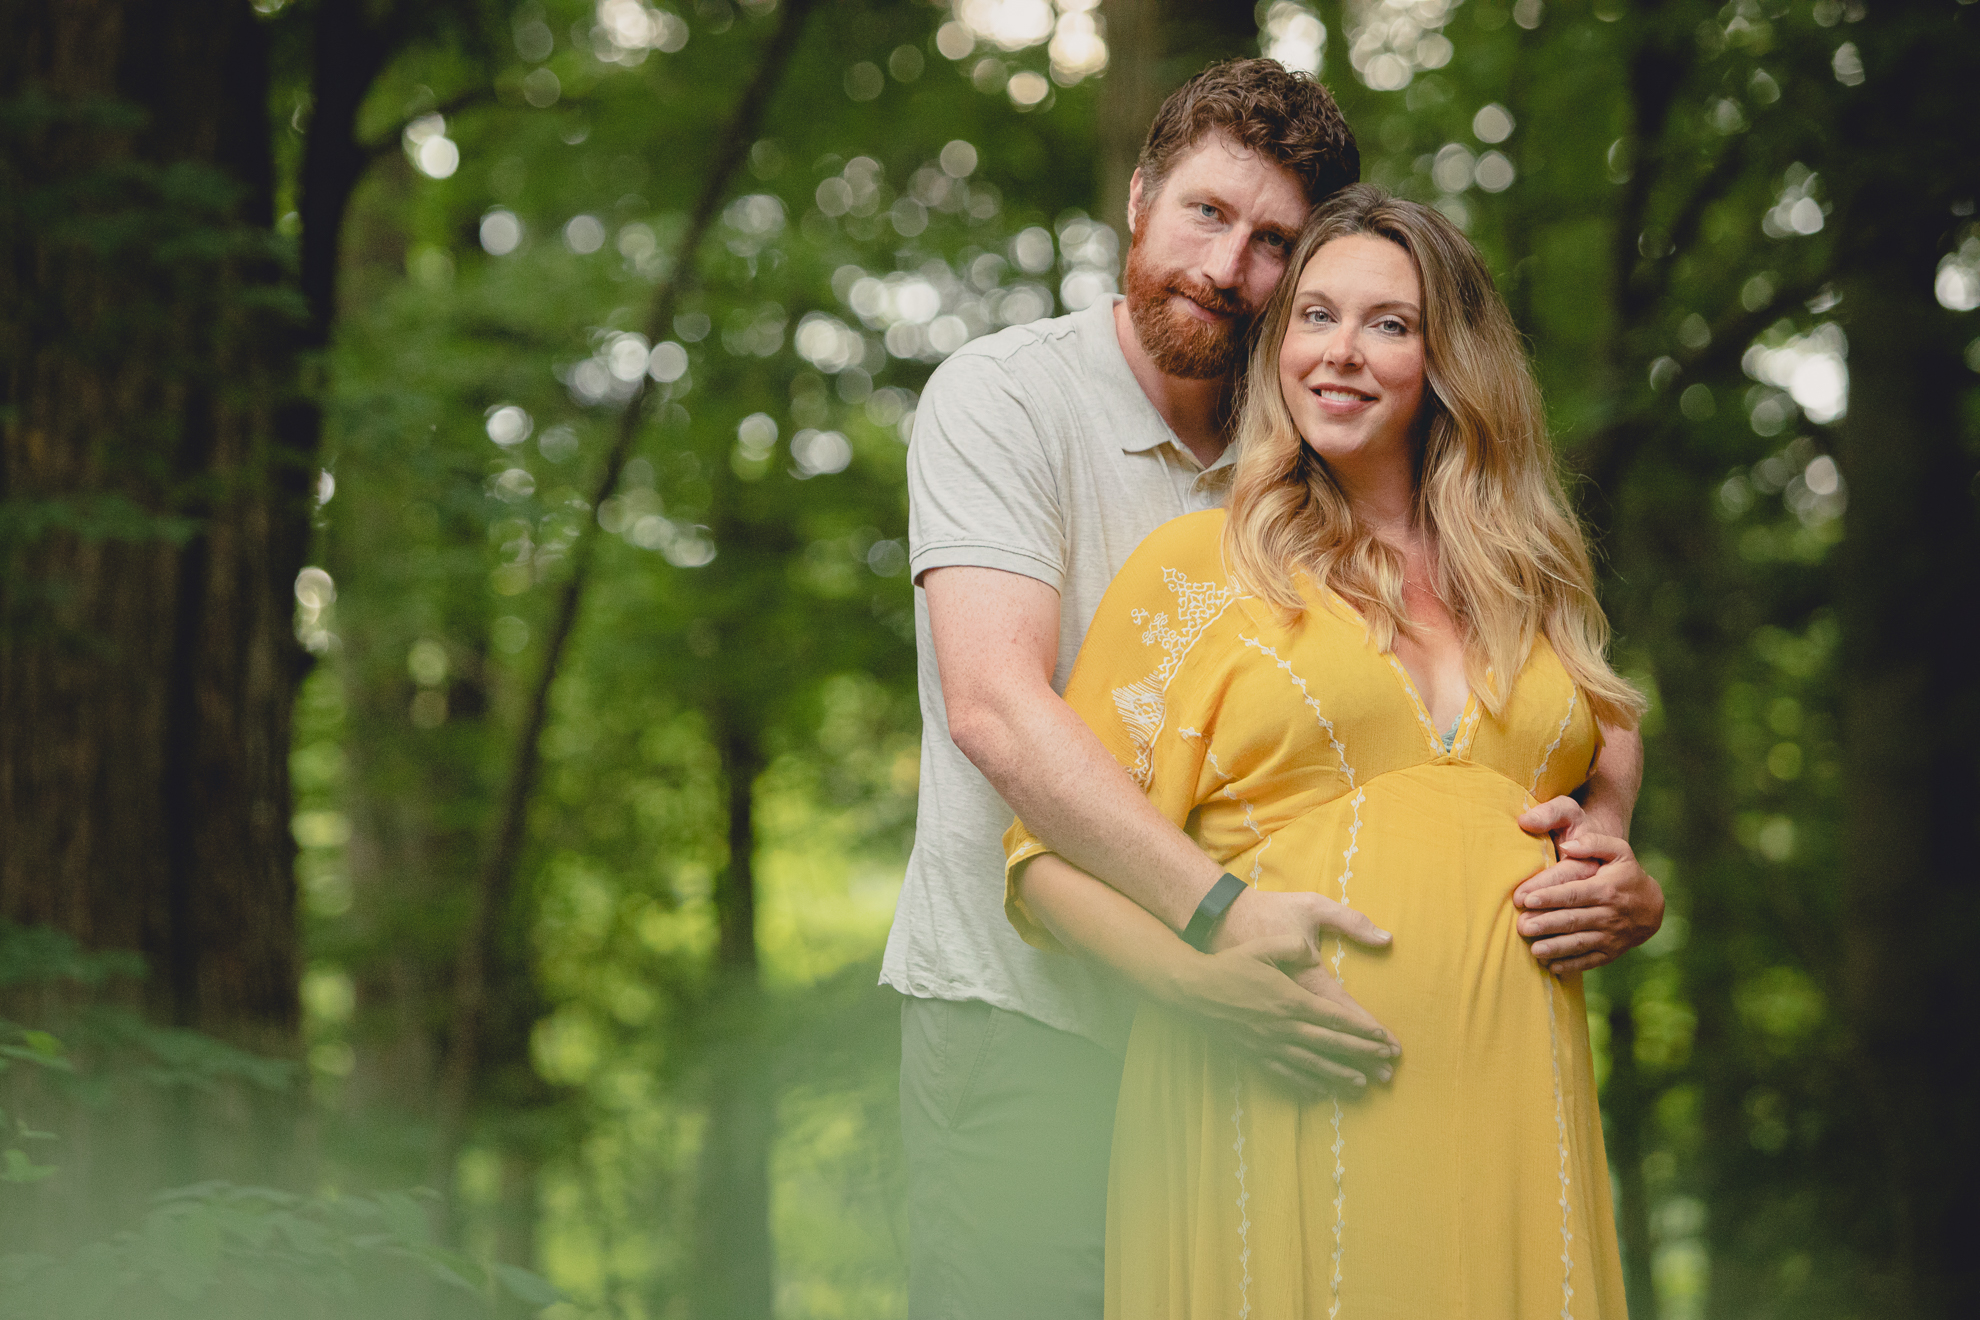 maternity portrait of pregnant mother with husband smiling for photographer in forest at Chestnut Ridge Park near Buffalo, NY